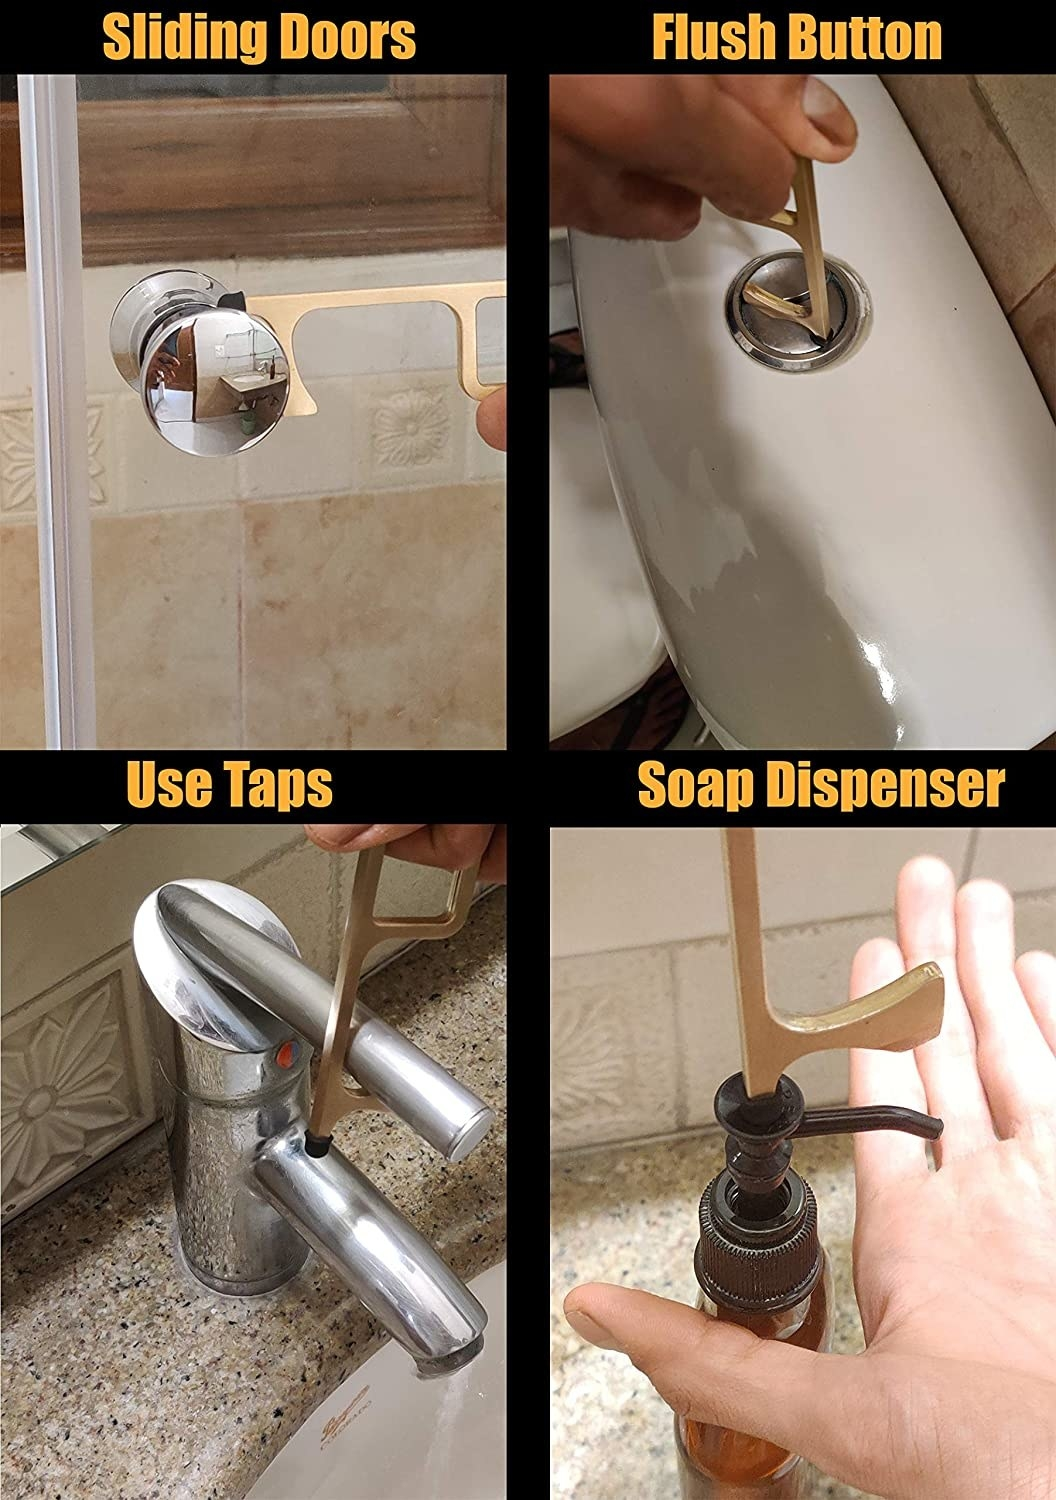 The key used to slide doors, dispense soap, operate taps and flushes.